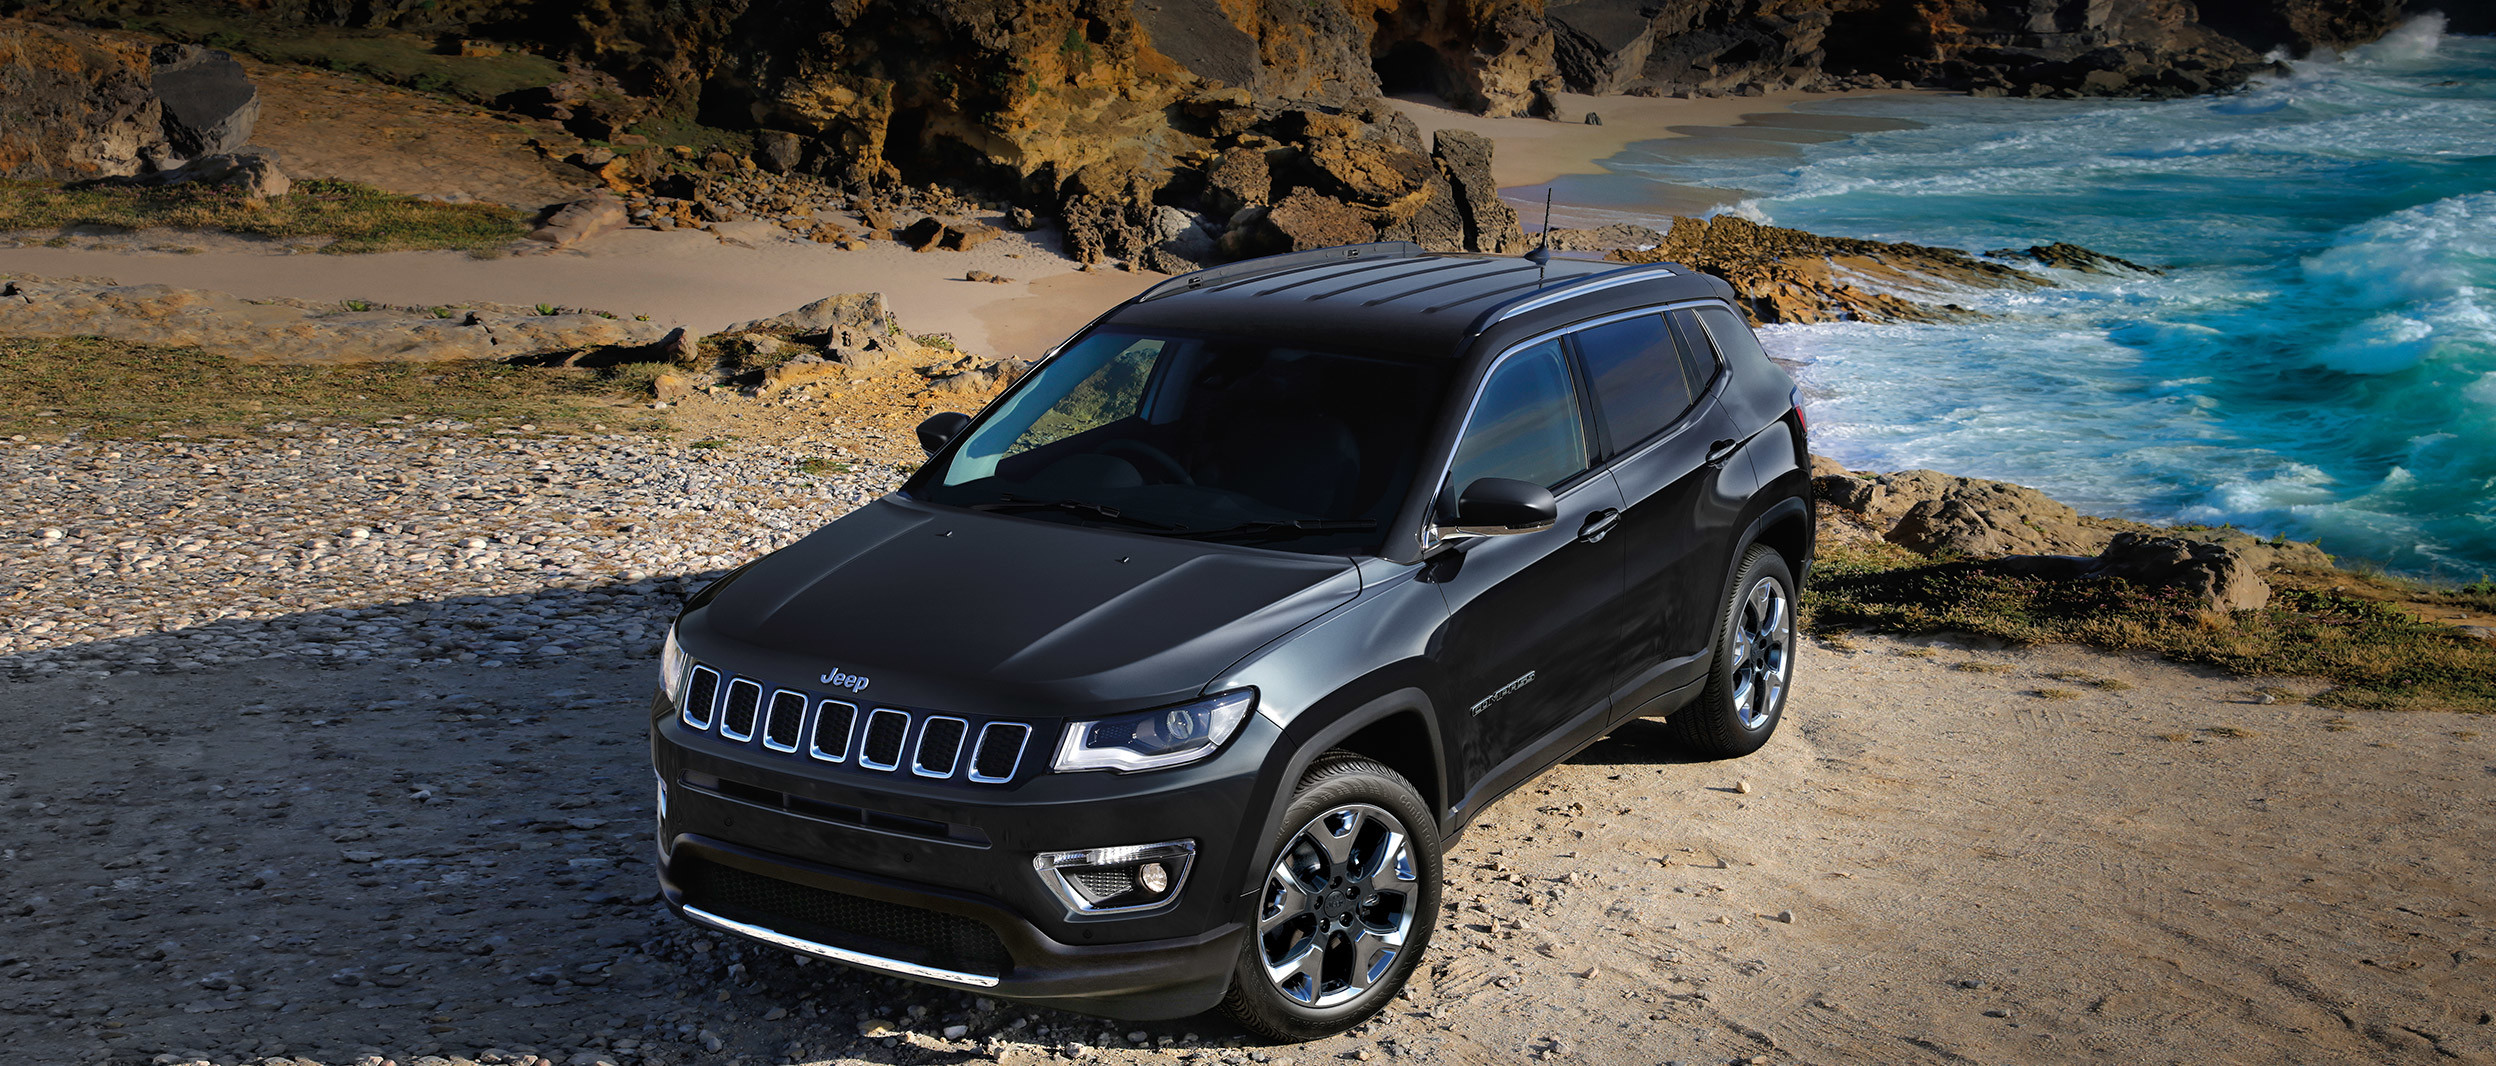 Black 2019 Jeep Compass, parked on a rocky beach.